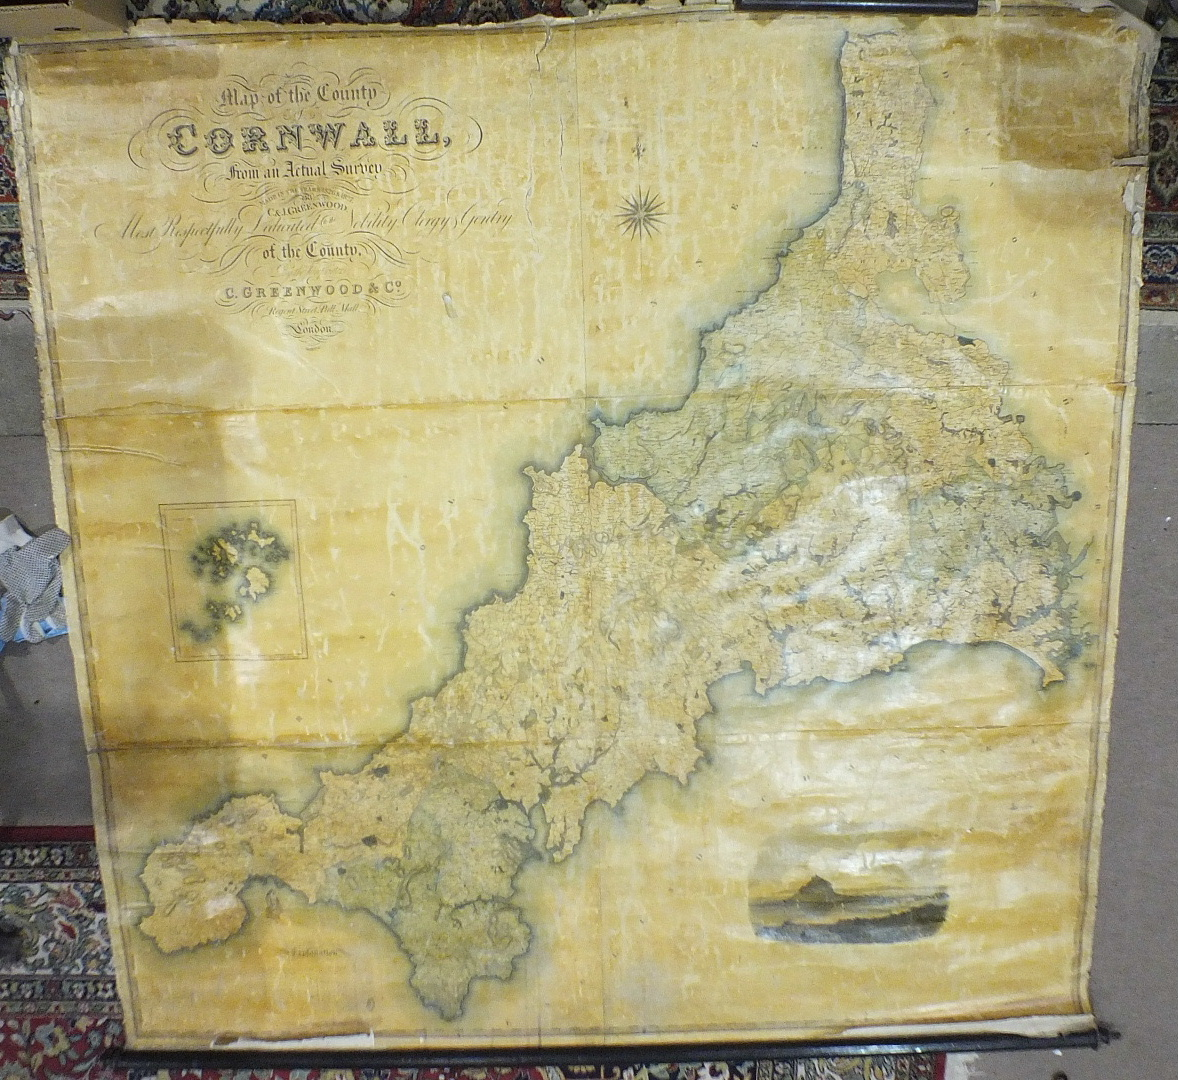 Lot 44 - Greenwood (C & Co.), a large-scale Map of the County of Cornwall from an Actual Survey made in the